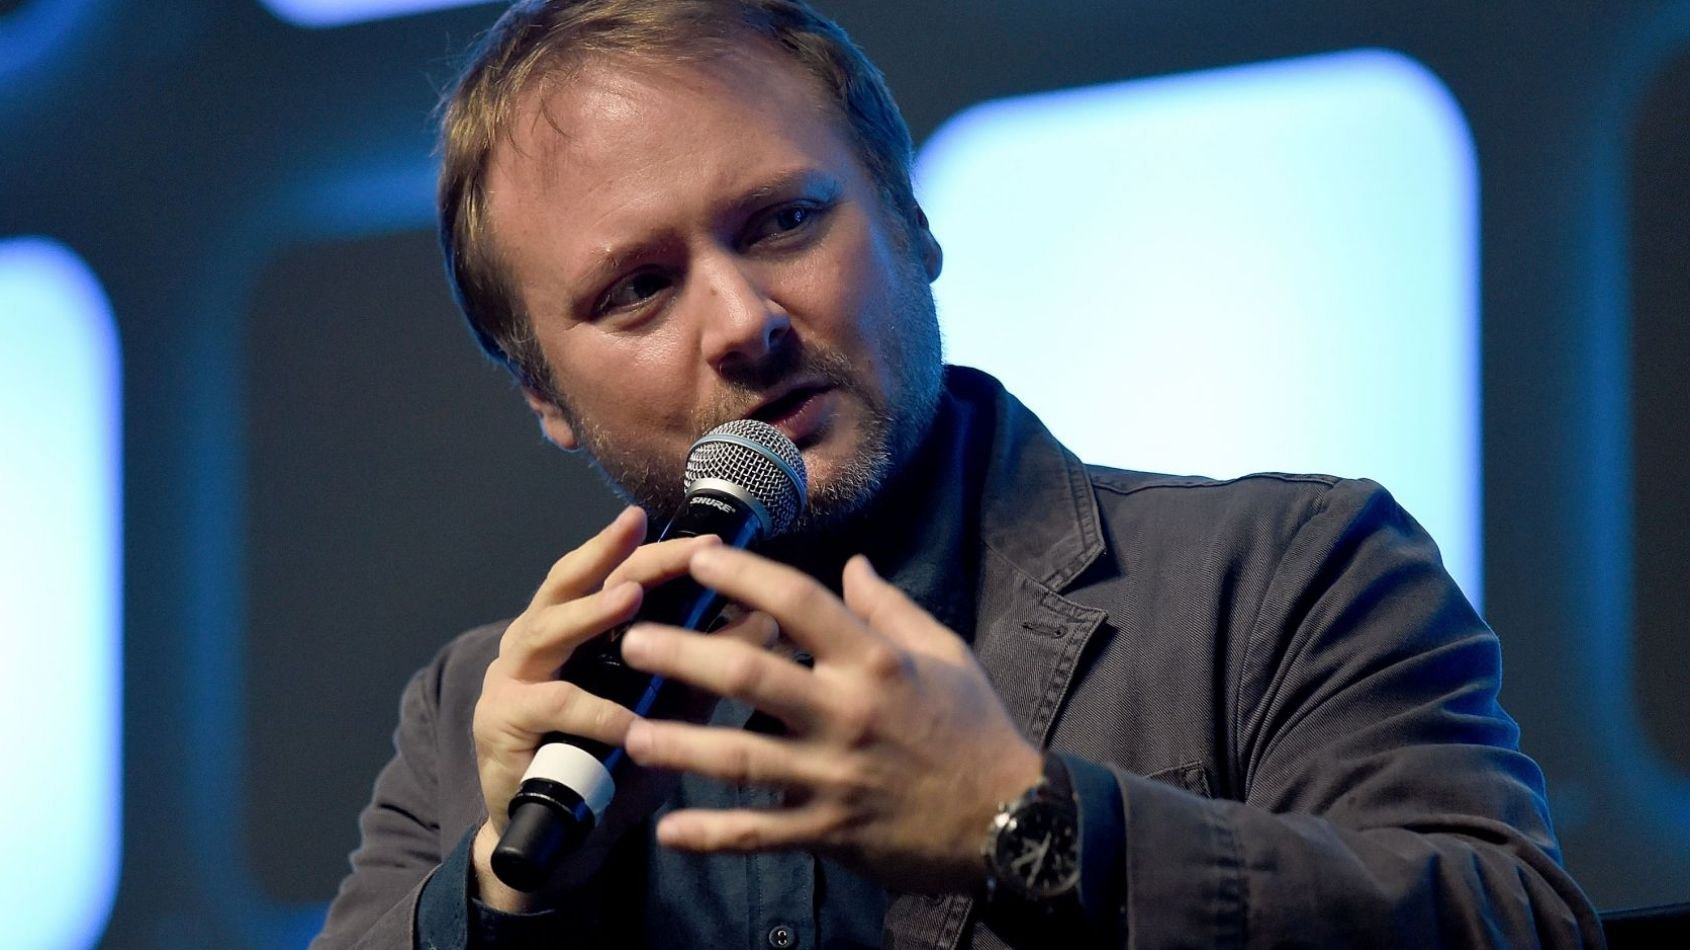 Rian Johnson révèle le premier mot prononcé dans les Derniers Jedi